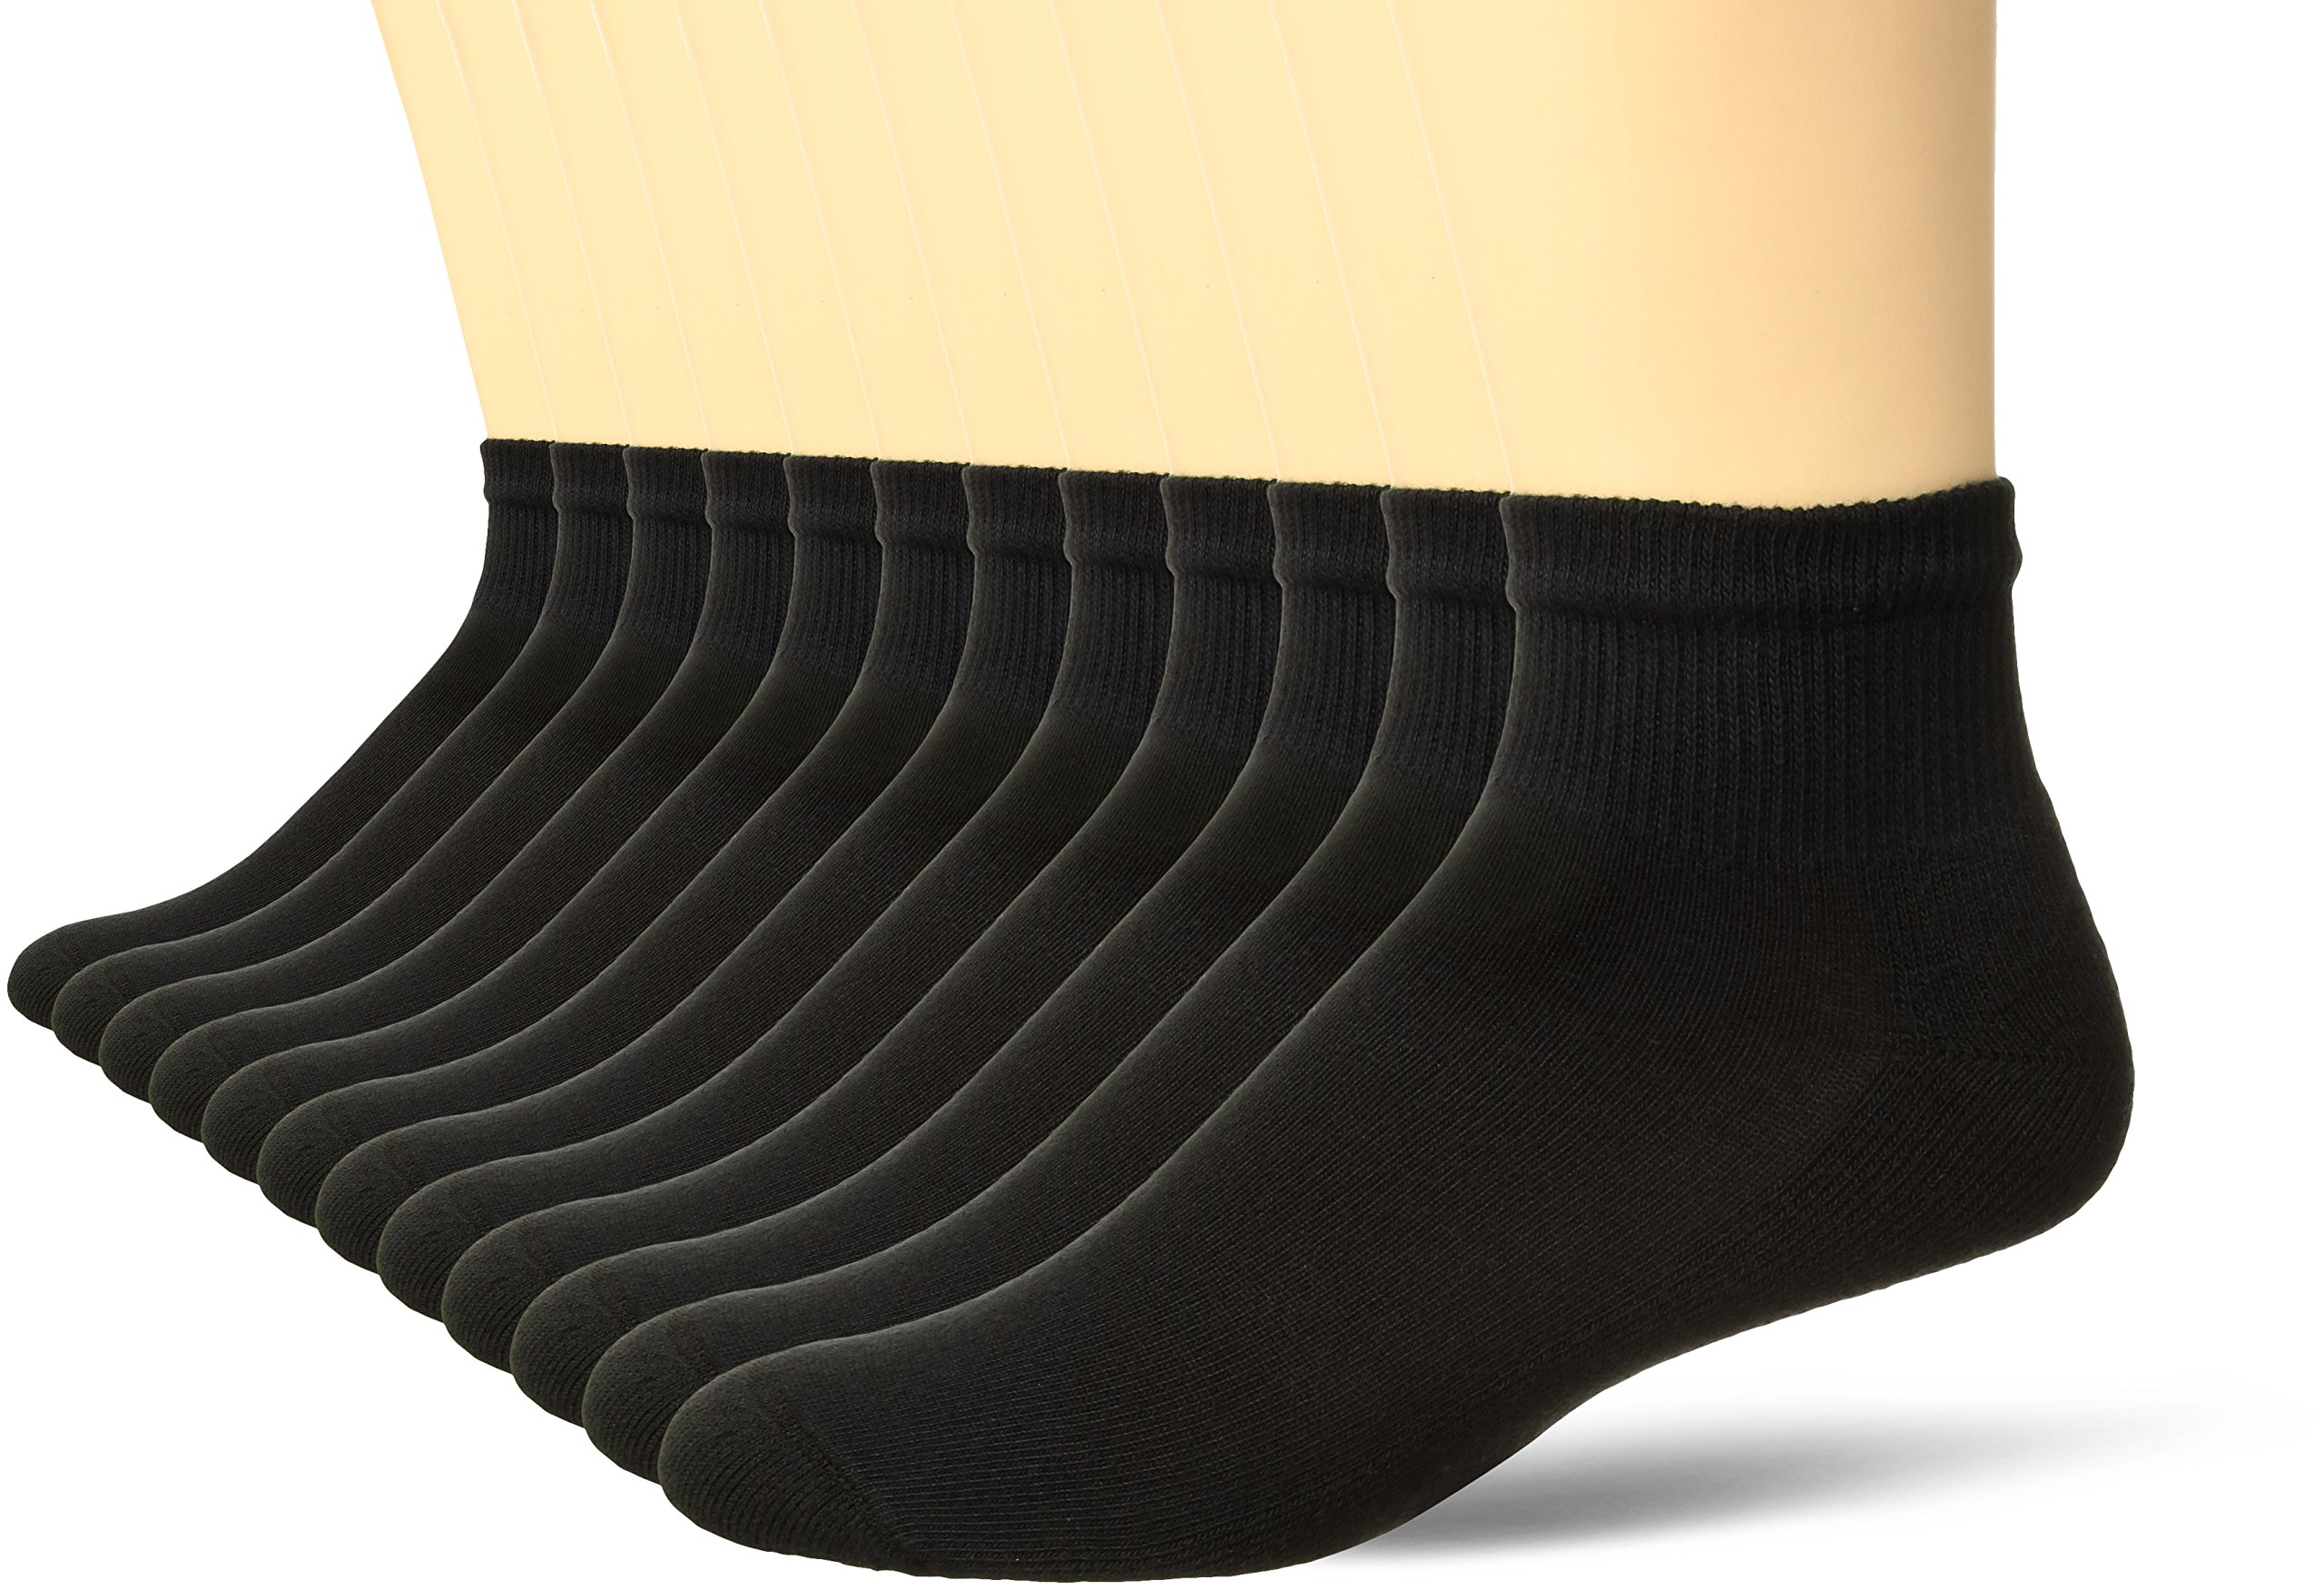 Hanes Men's Active Cool 12-Pack Ankle Socks, Black, 6-12 by Hanes (Image #1)